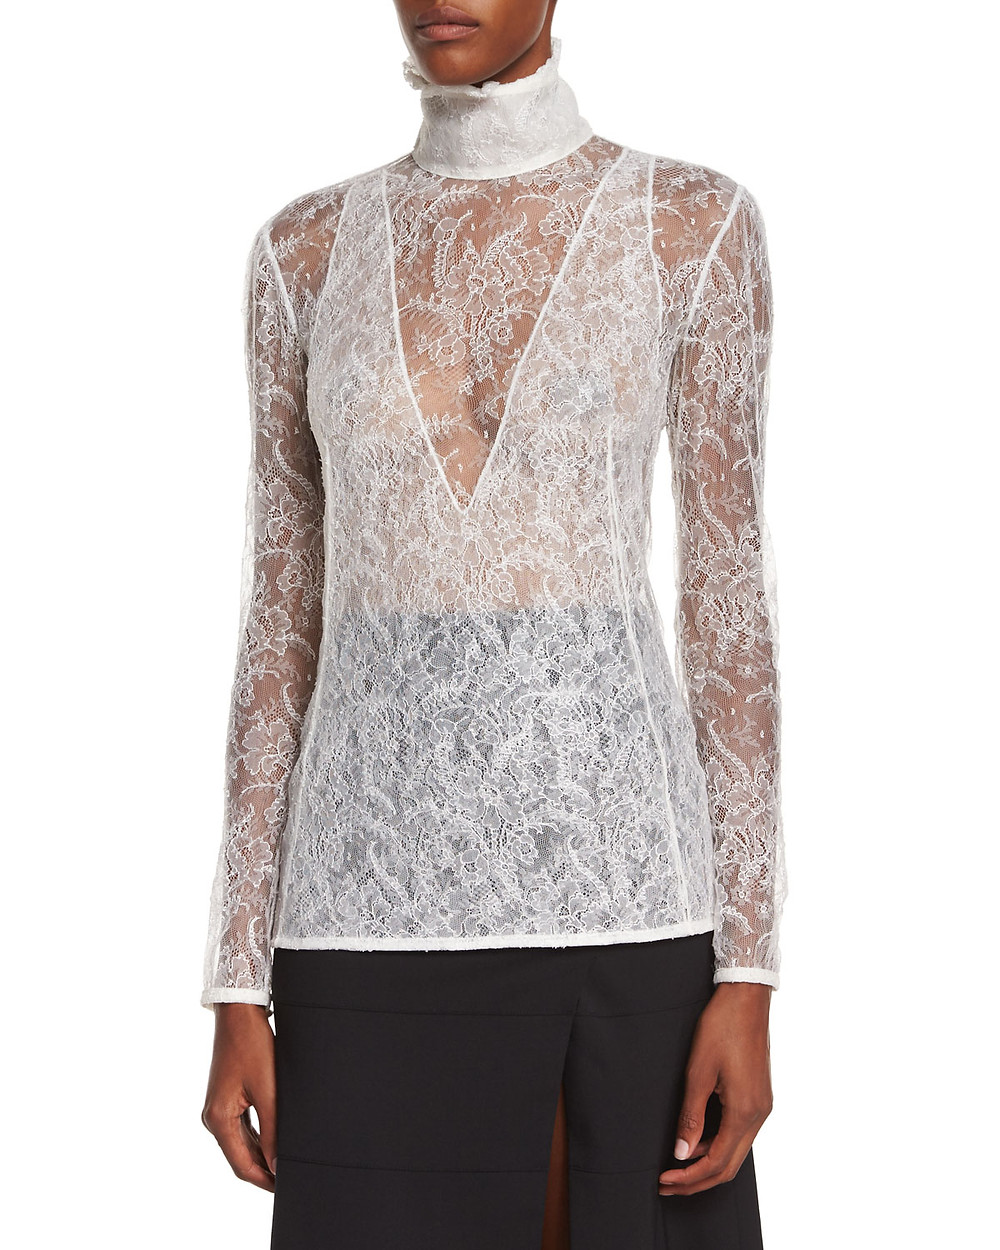 Altuzarra high neck sheer lace blouse $598